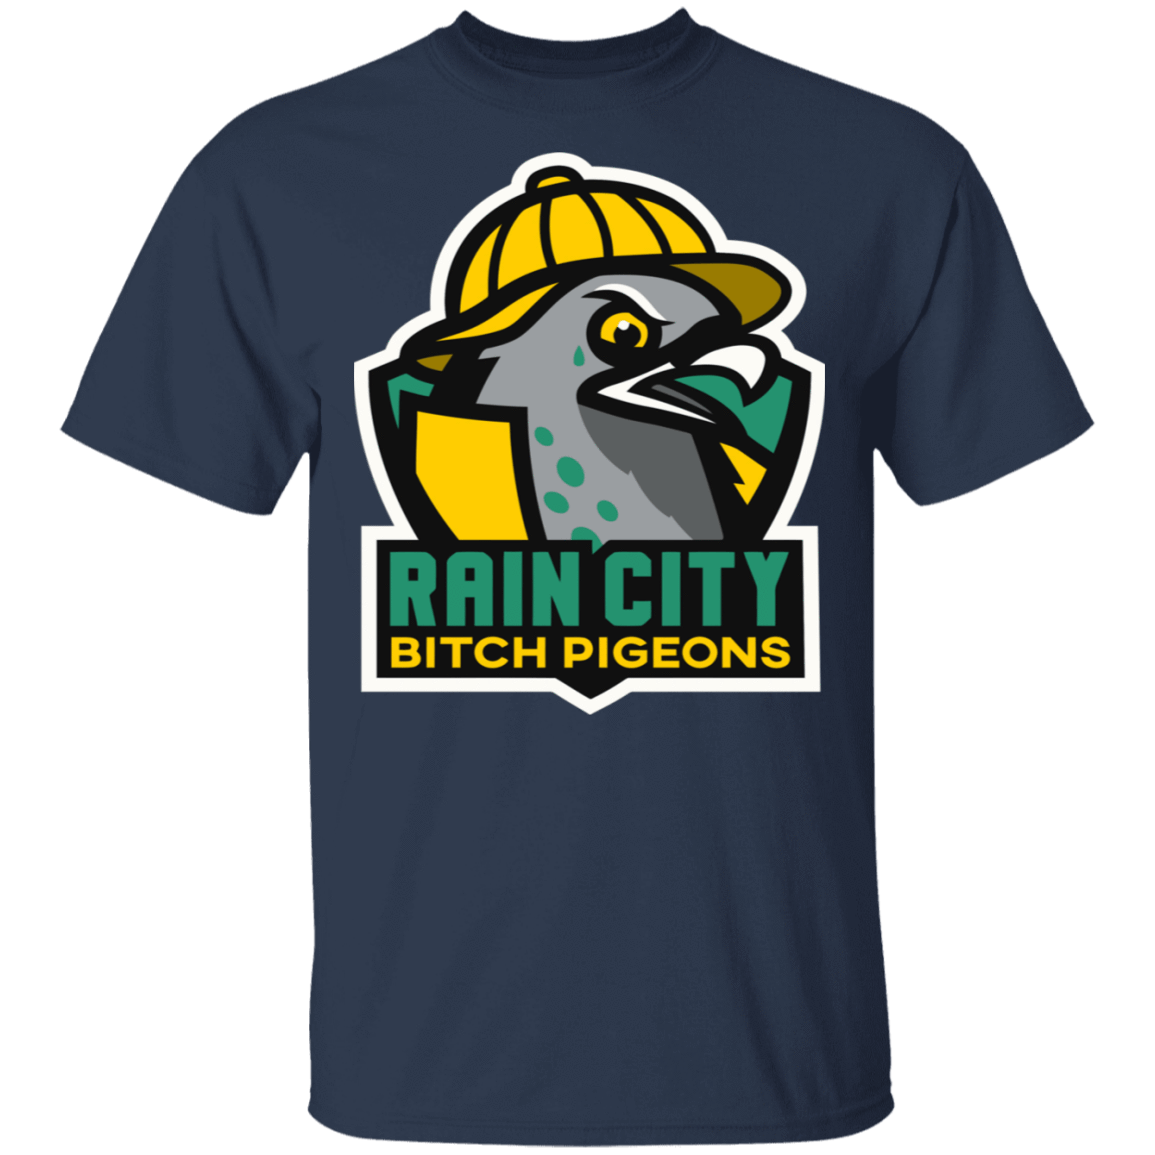 Rain City Bitch Pigeons T-Shirts, Hoodies, Tank 22-111-79271397-250 - Tee Ript